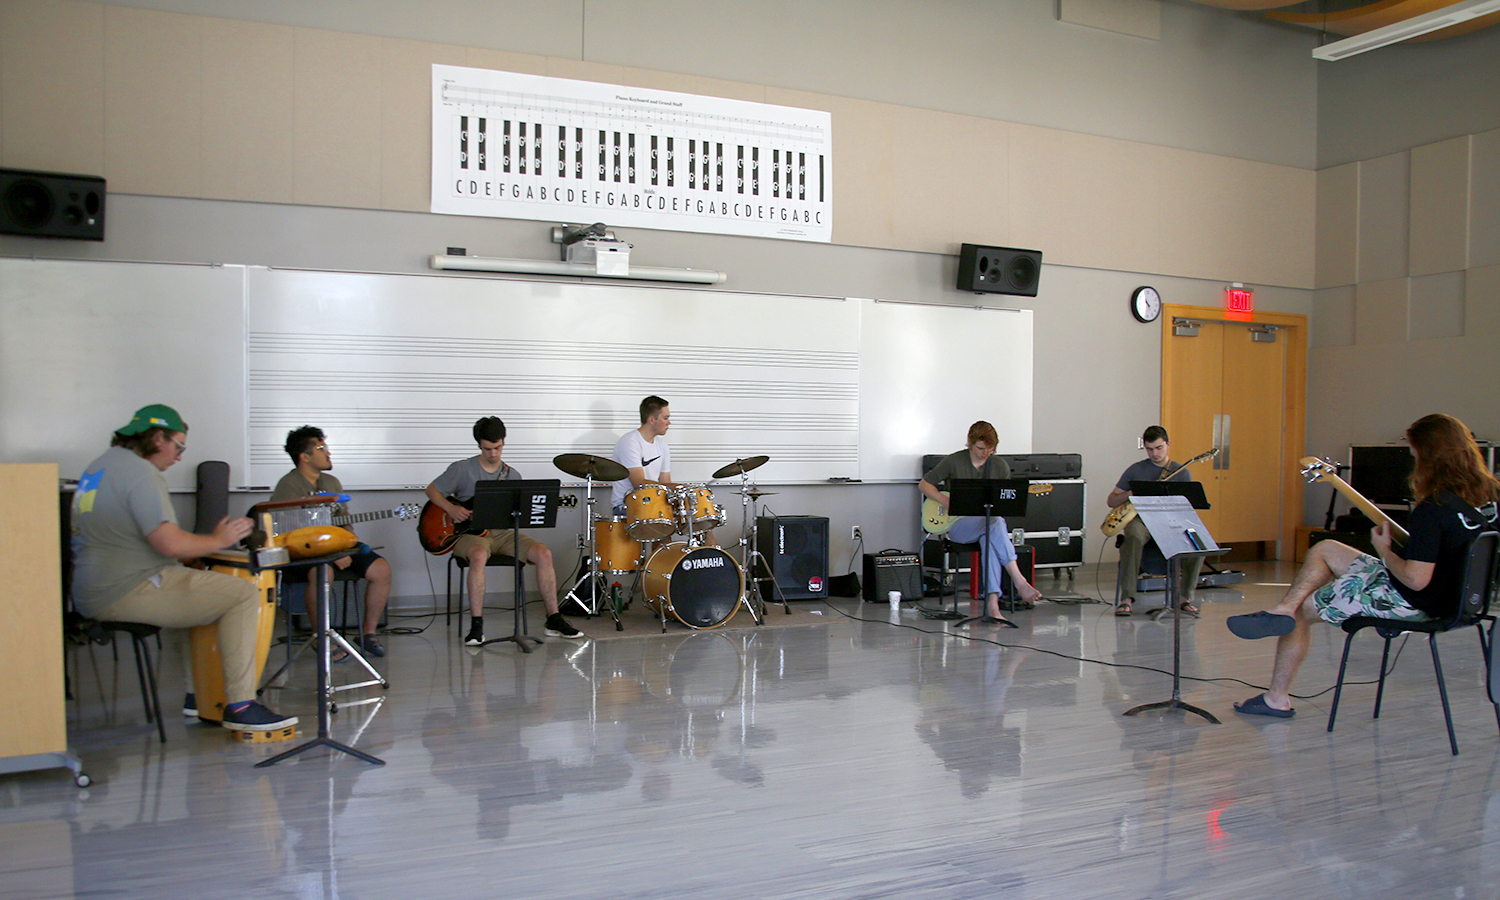 HWS students rehearse for the 2018 Xerox International Rochester Jazz Festival. Guitarists Michael Bruno '19 and Bradley Stewart '19, drummer Nick LaDuca '19 and percussionist Orson Sproule '21 and bass guitarist Jasper White '20 are led by Applied Instructor of Music Greg Wachala (not pictured).